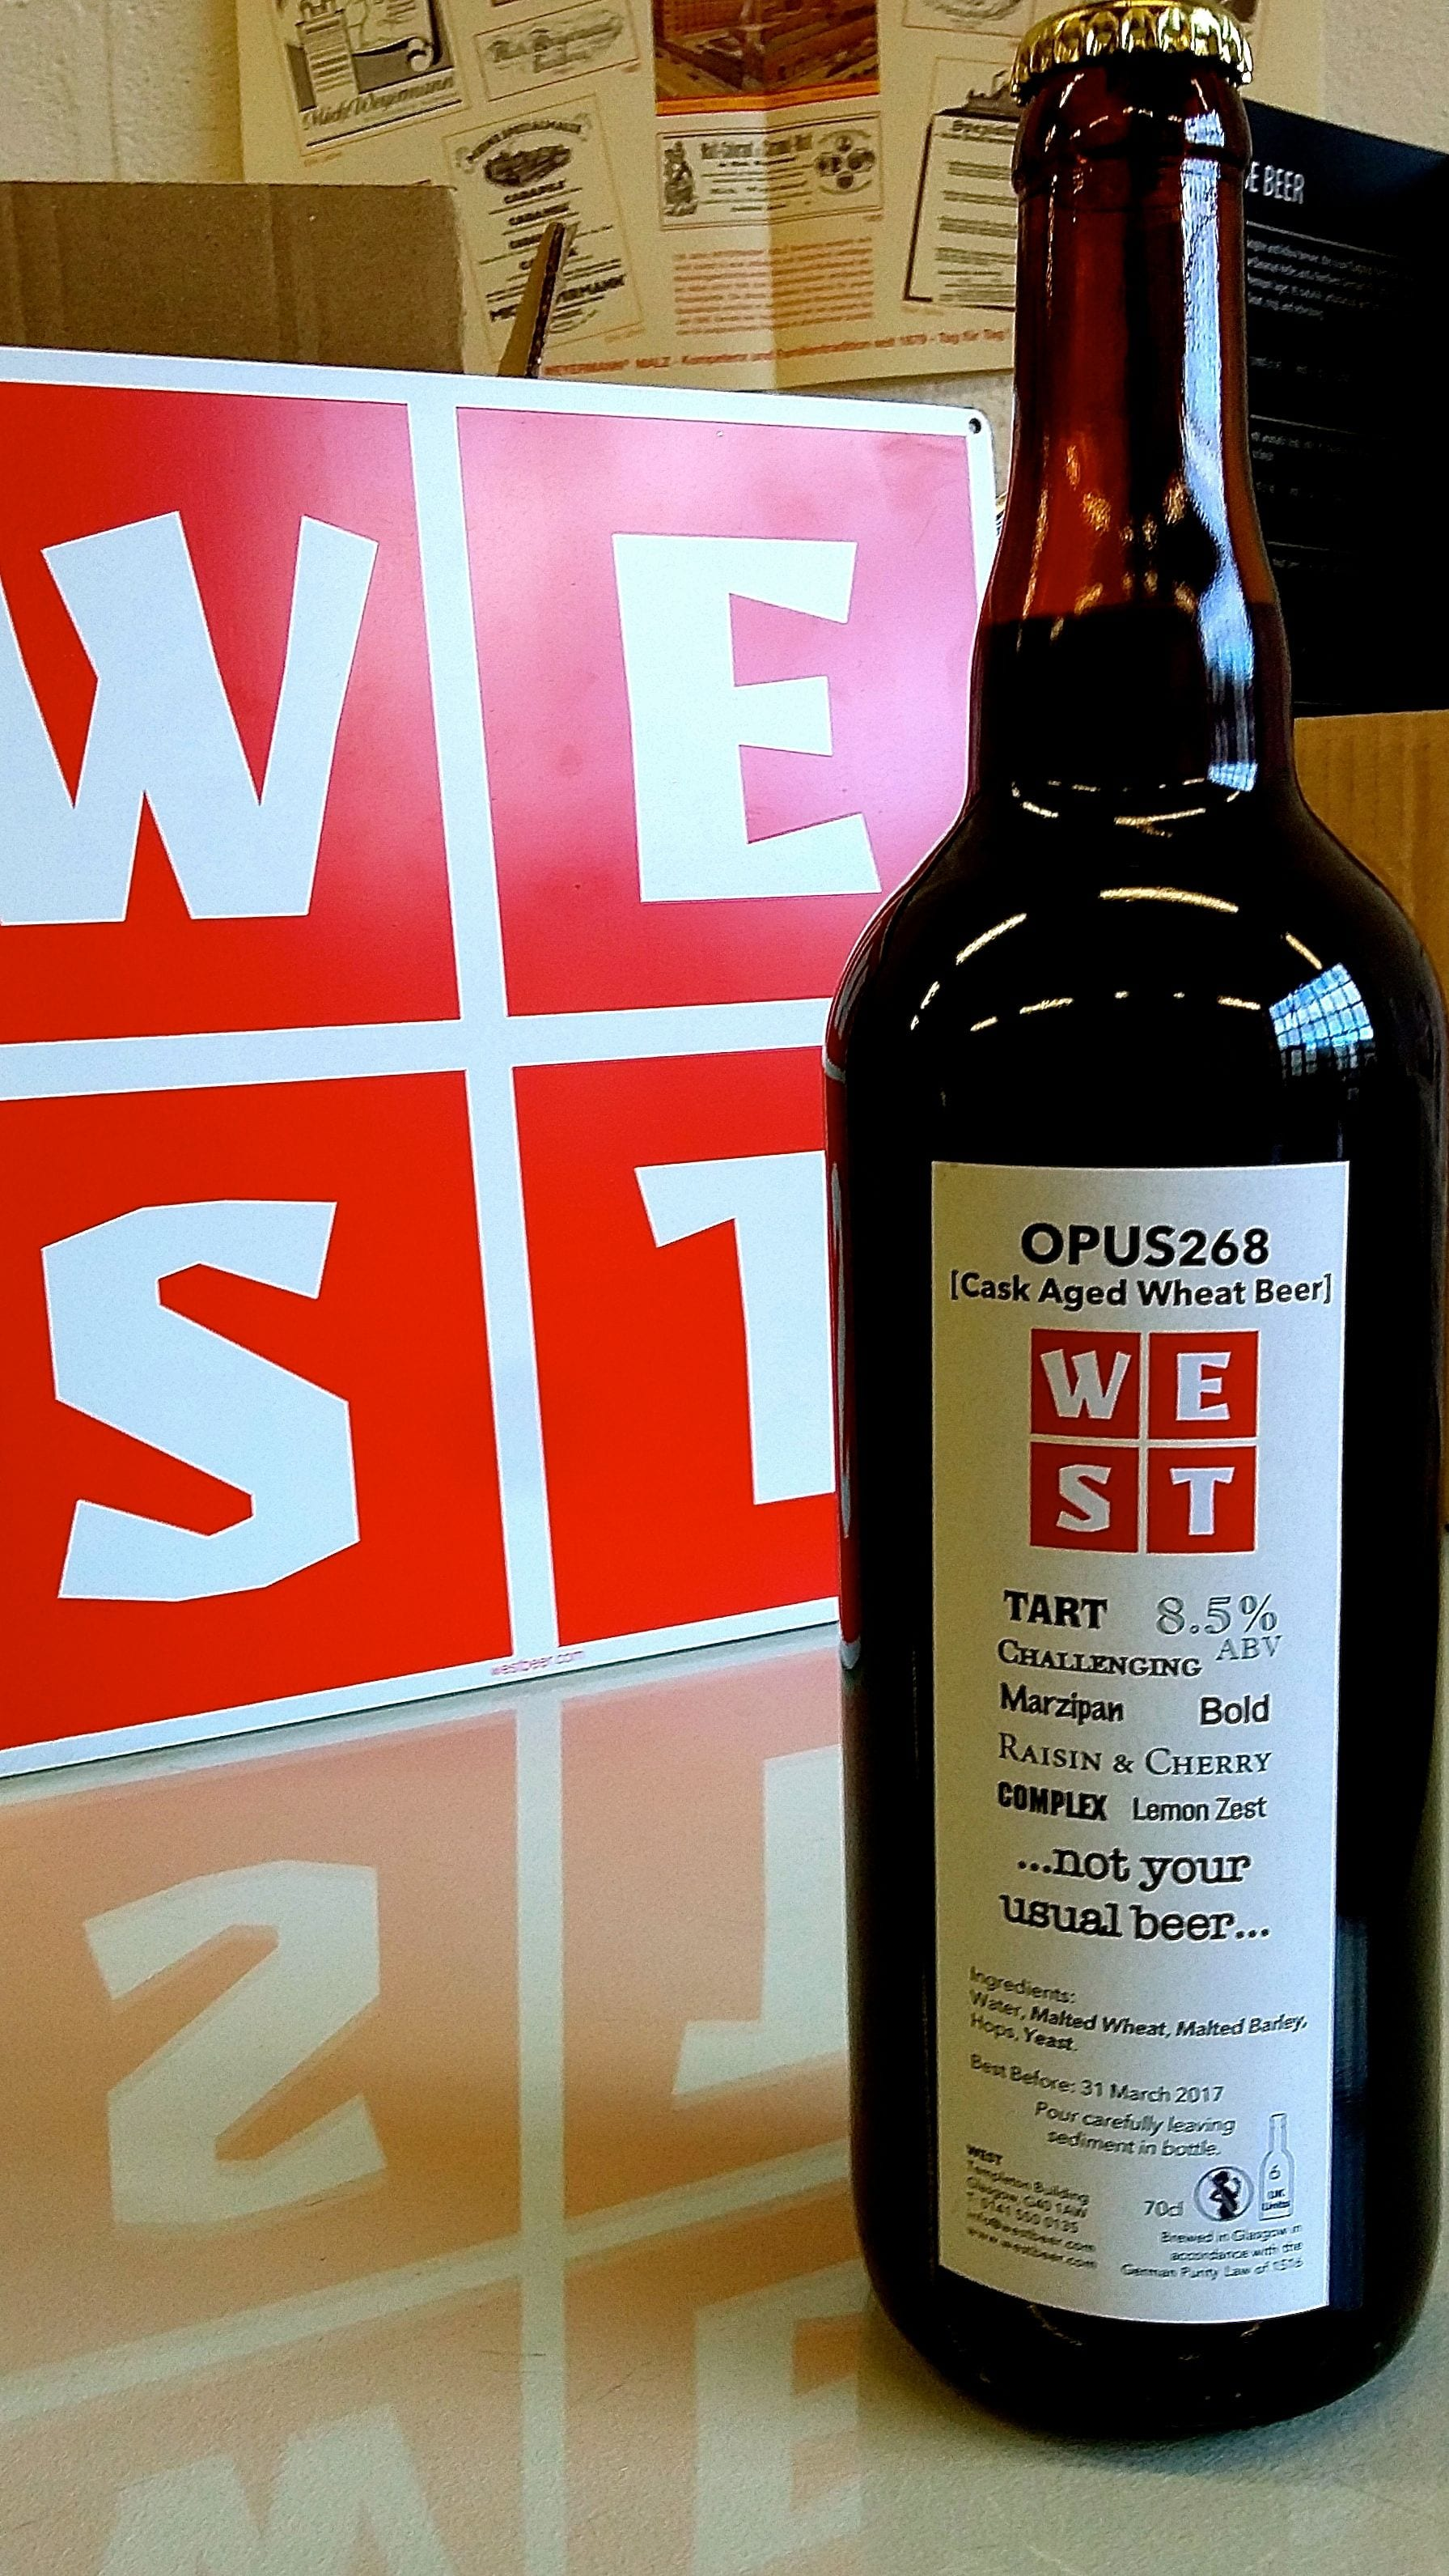 Opus268 bottle WEST brewery beer